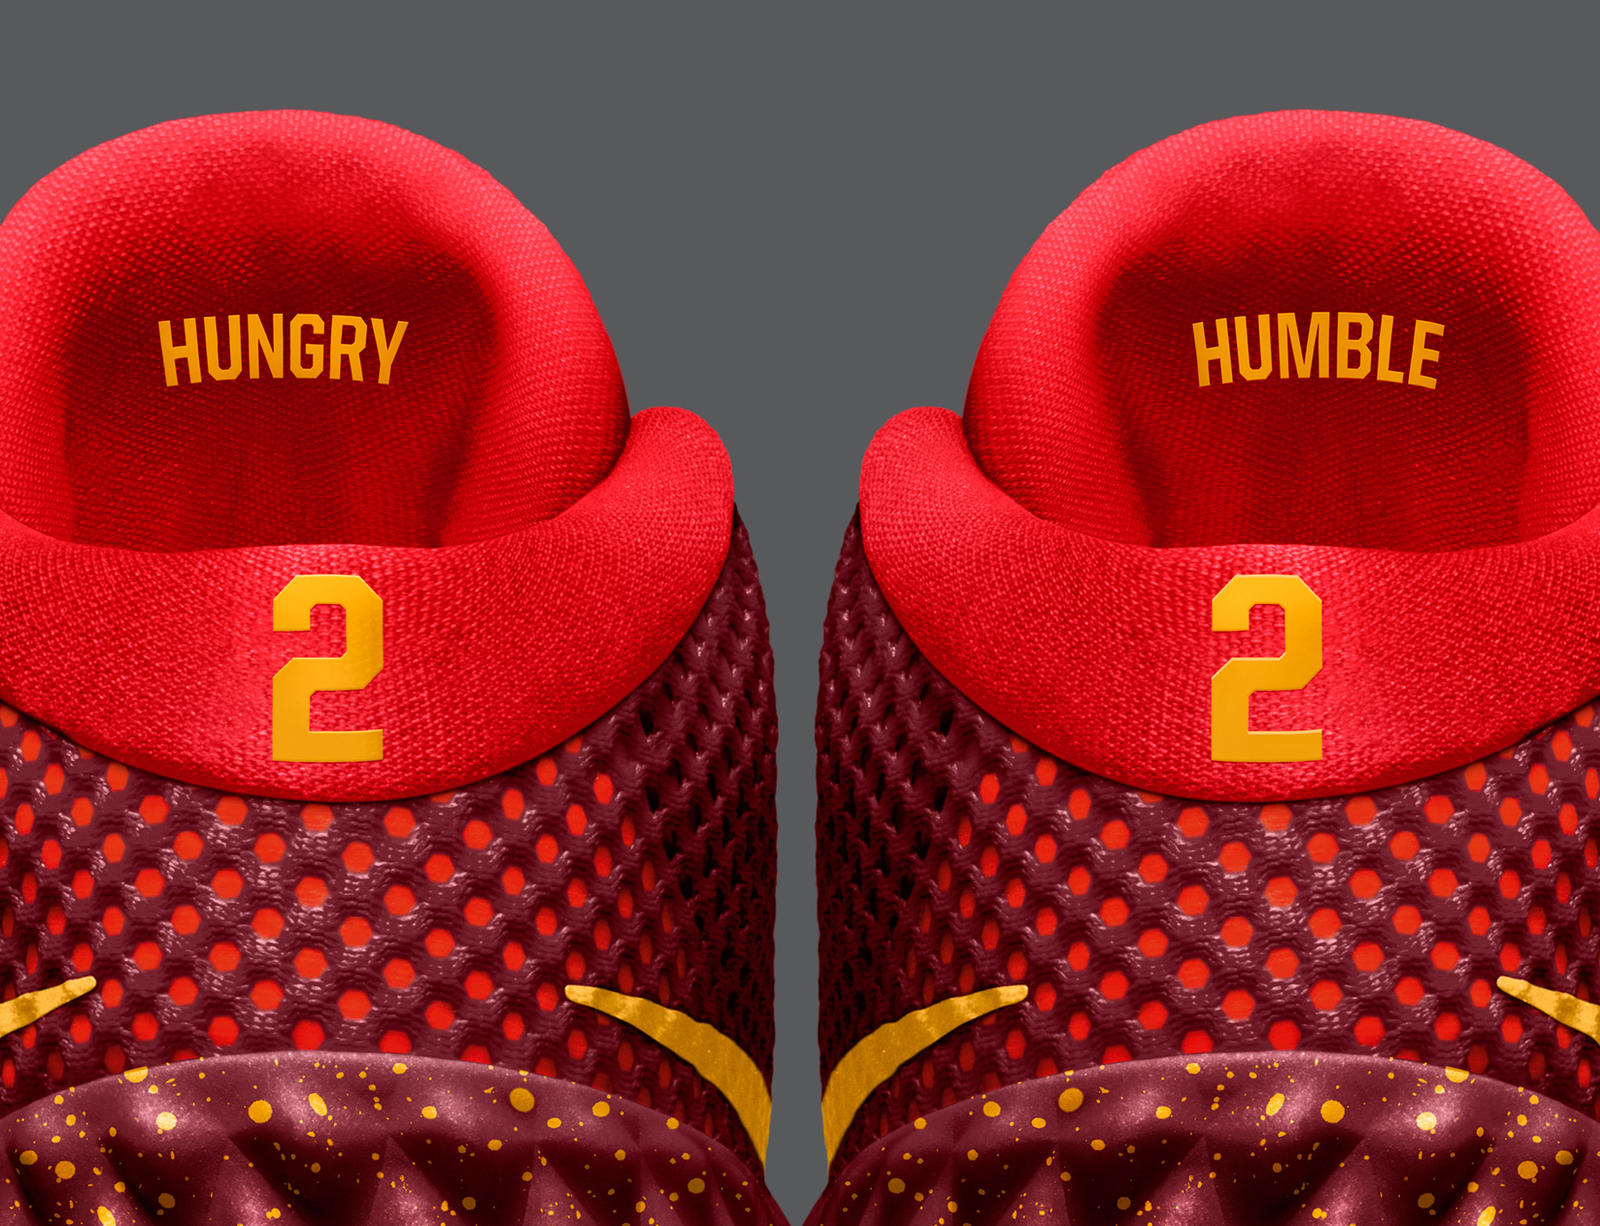 ac2c0b06484b Sp15 NikeiD Kyrie 1 2048x1570 Detail 4. KYRIE 1 NIKEiD customization ...